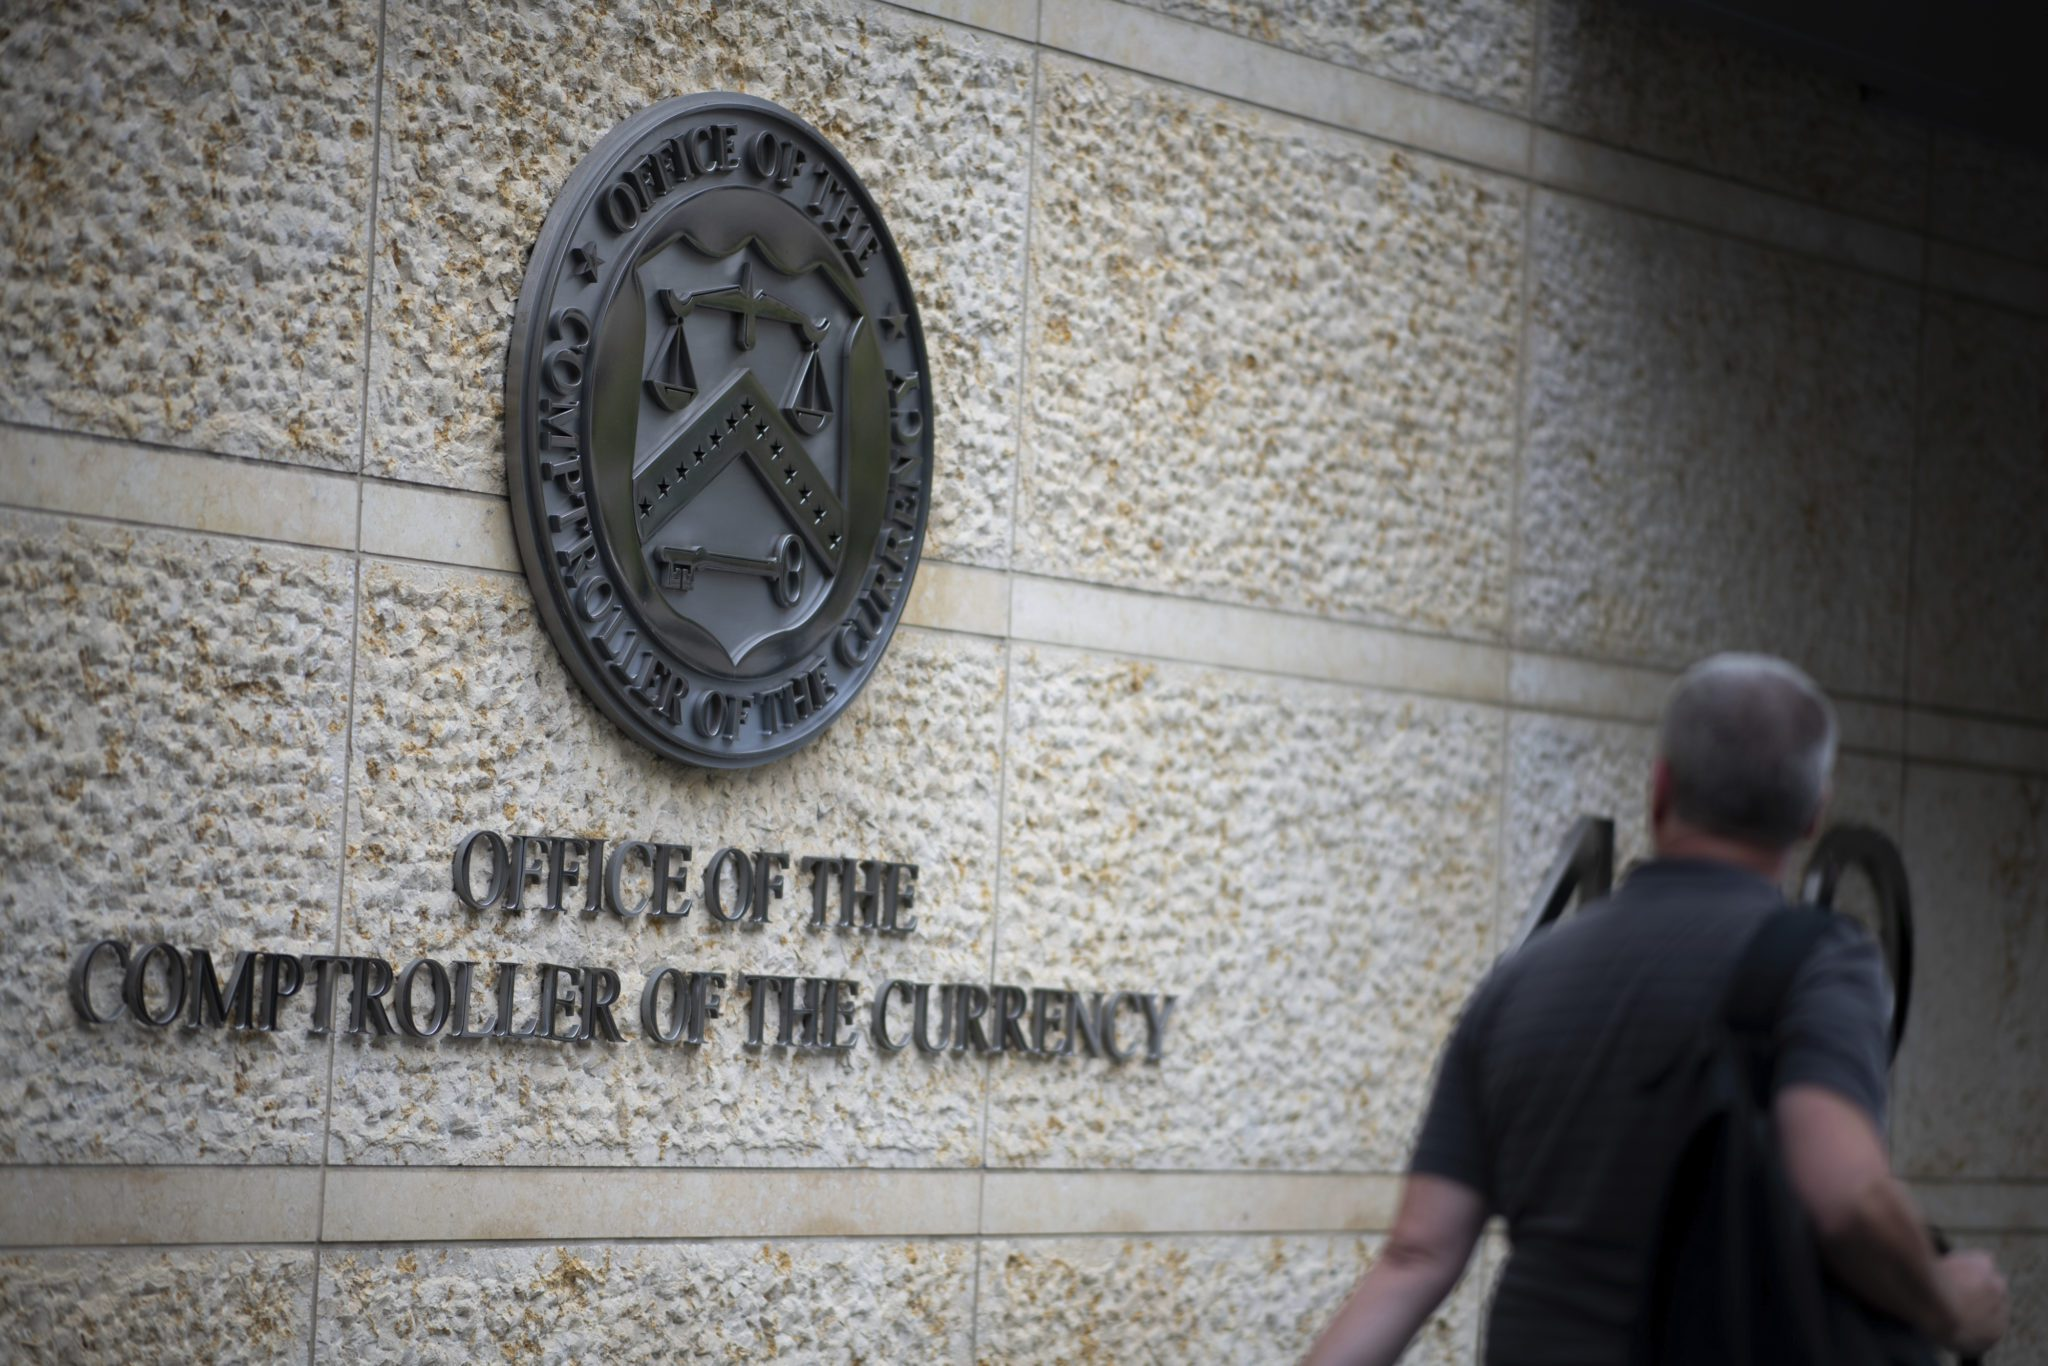 A man walks by the Office of the Comptroller of the Currency logo as it appears on OCC headquarters in Washington, D.C., as seen on September 9, 2019.